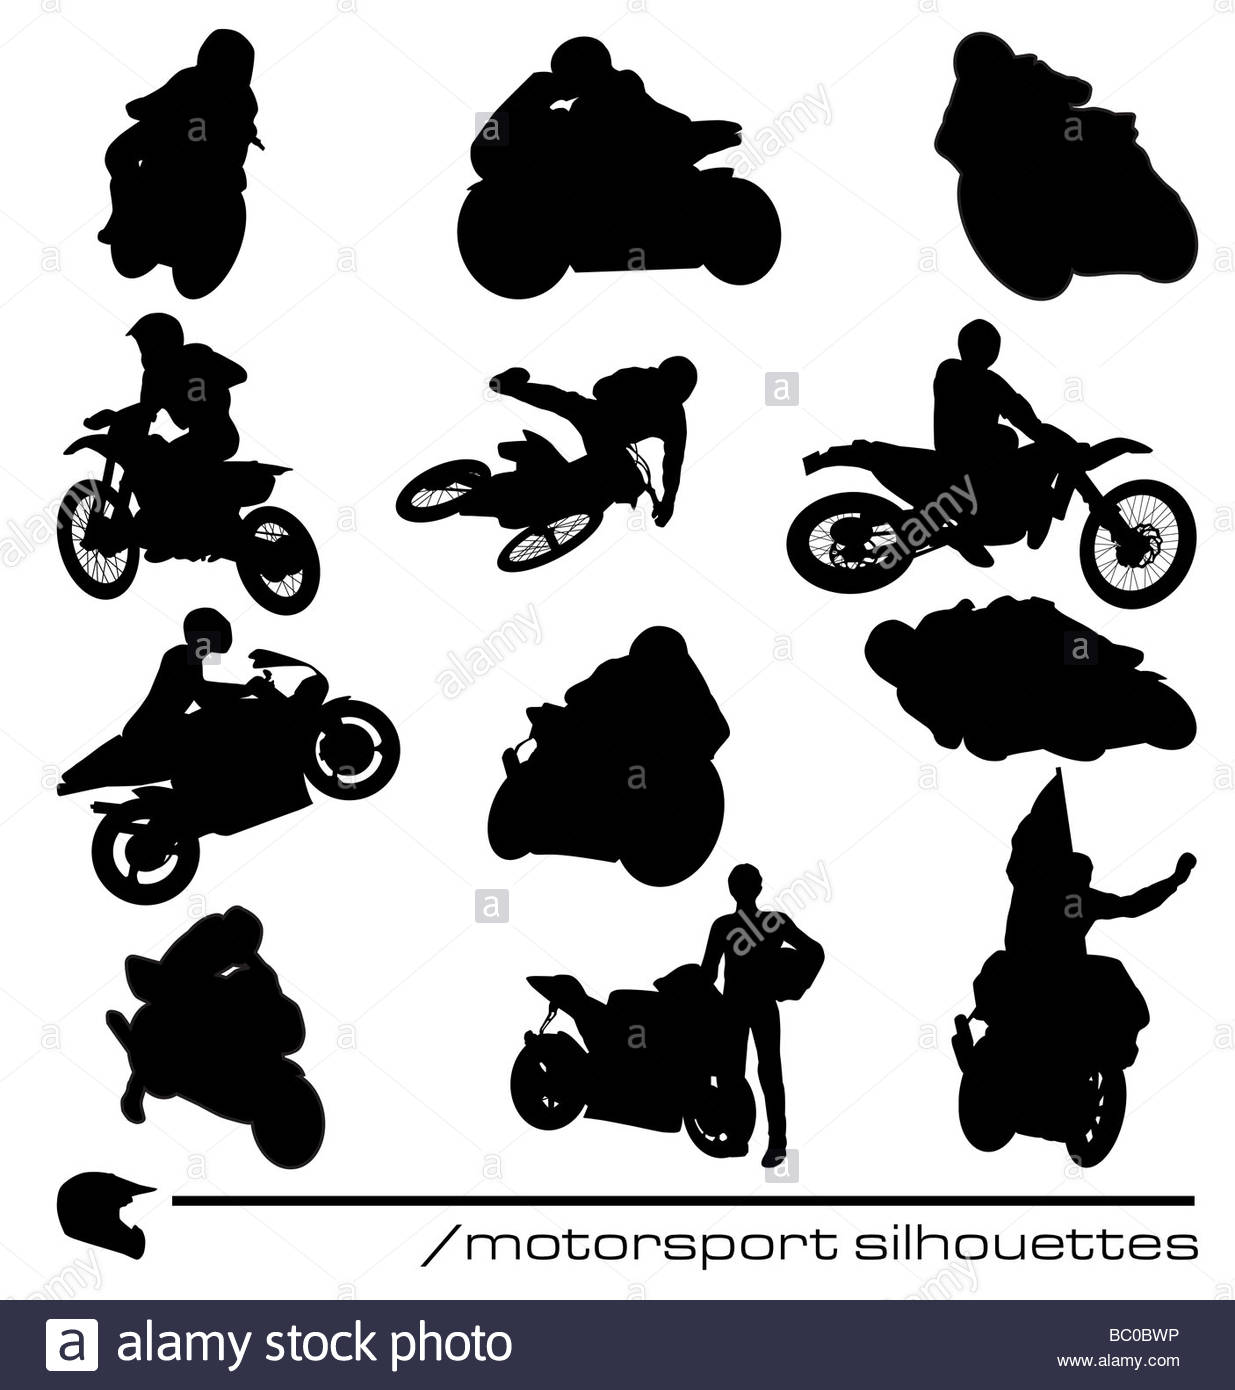 many different motocycle silhouettes with high detail - Stock Image